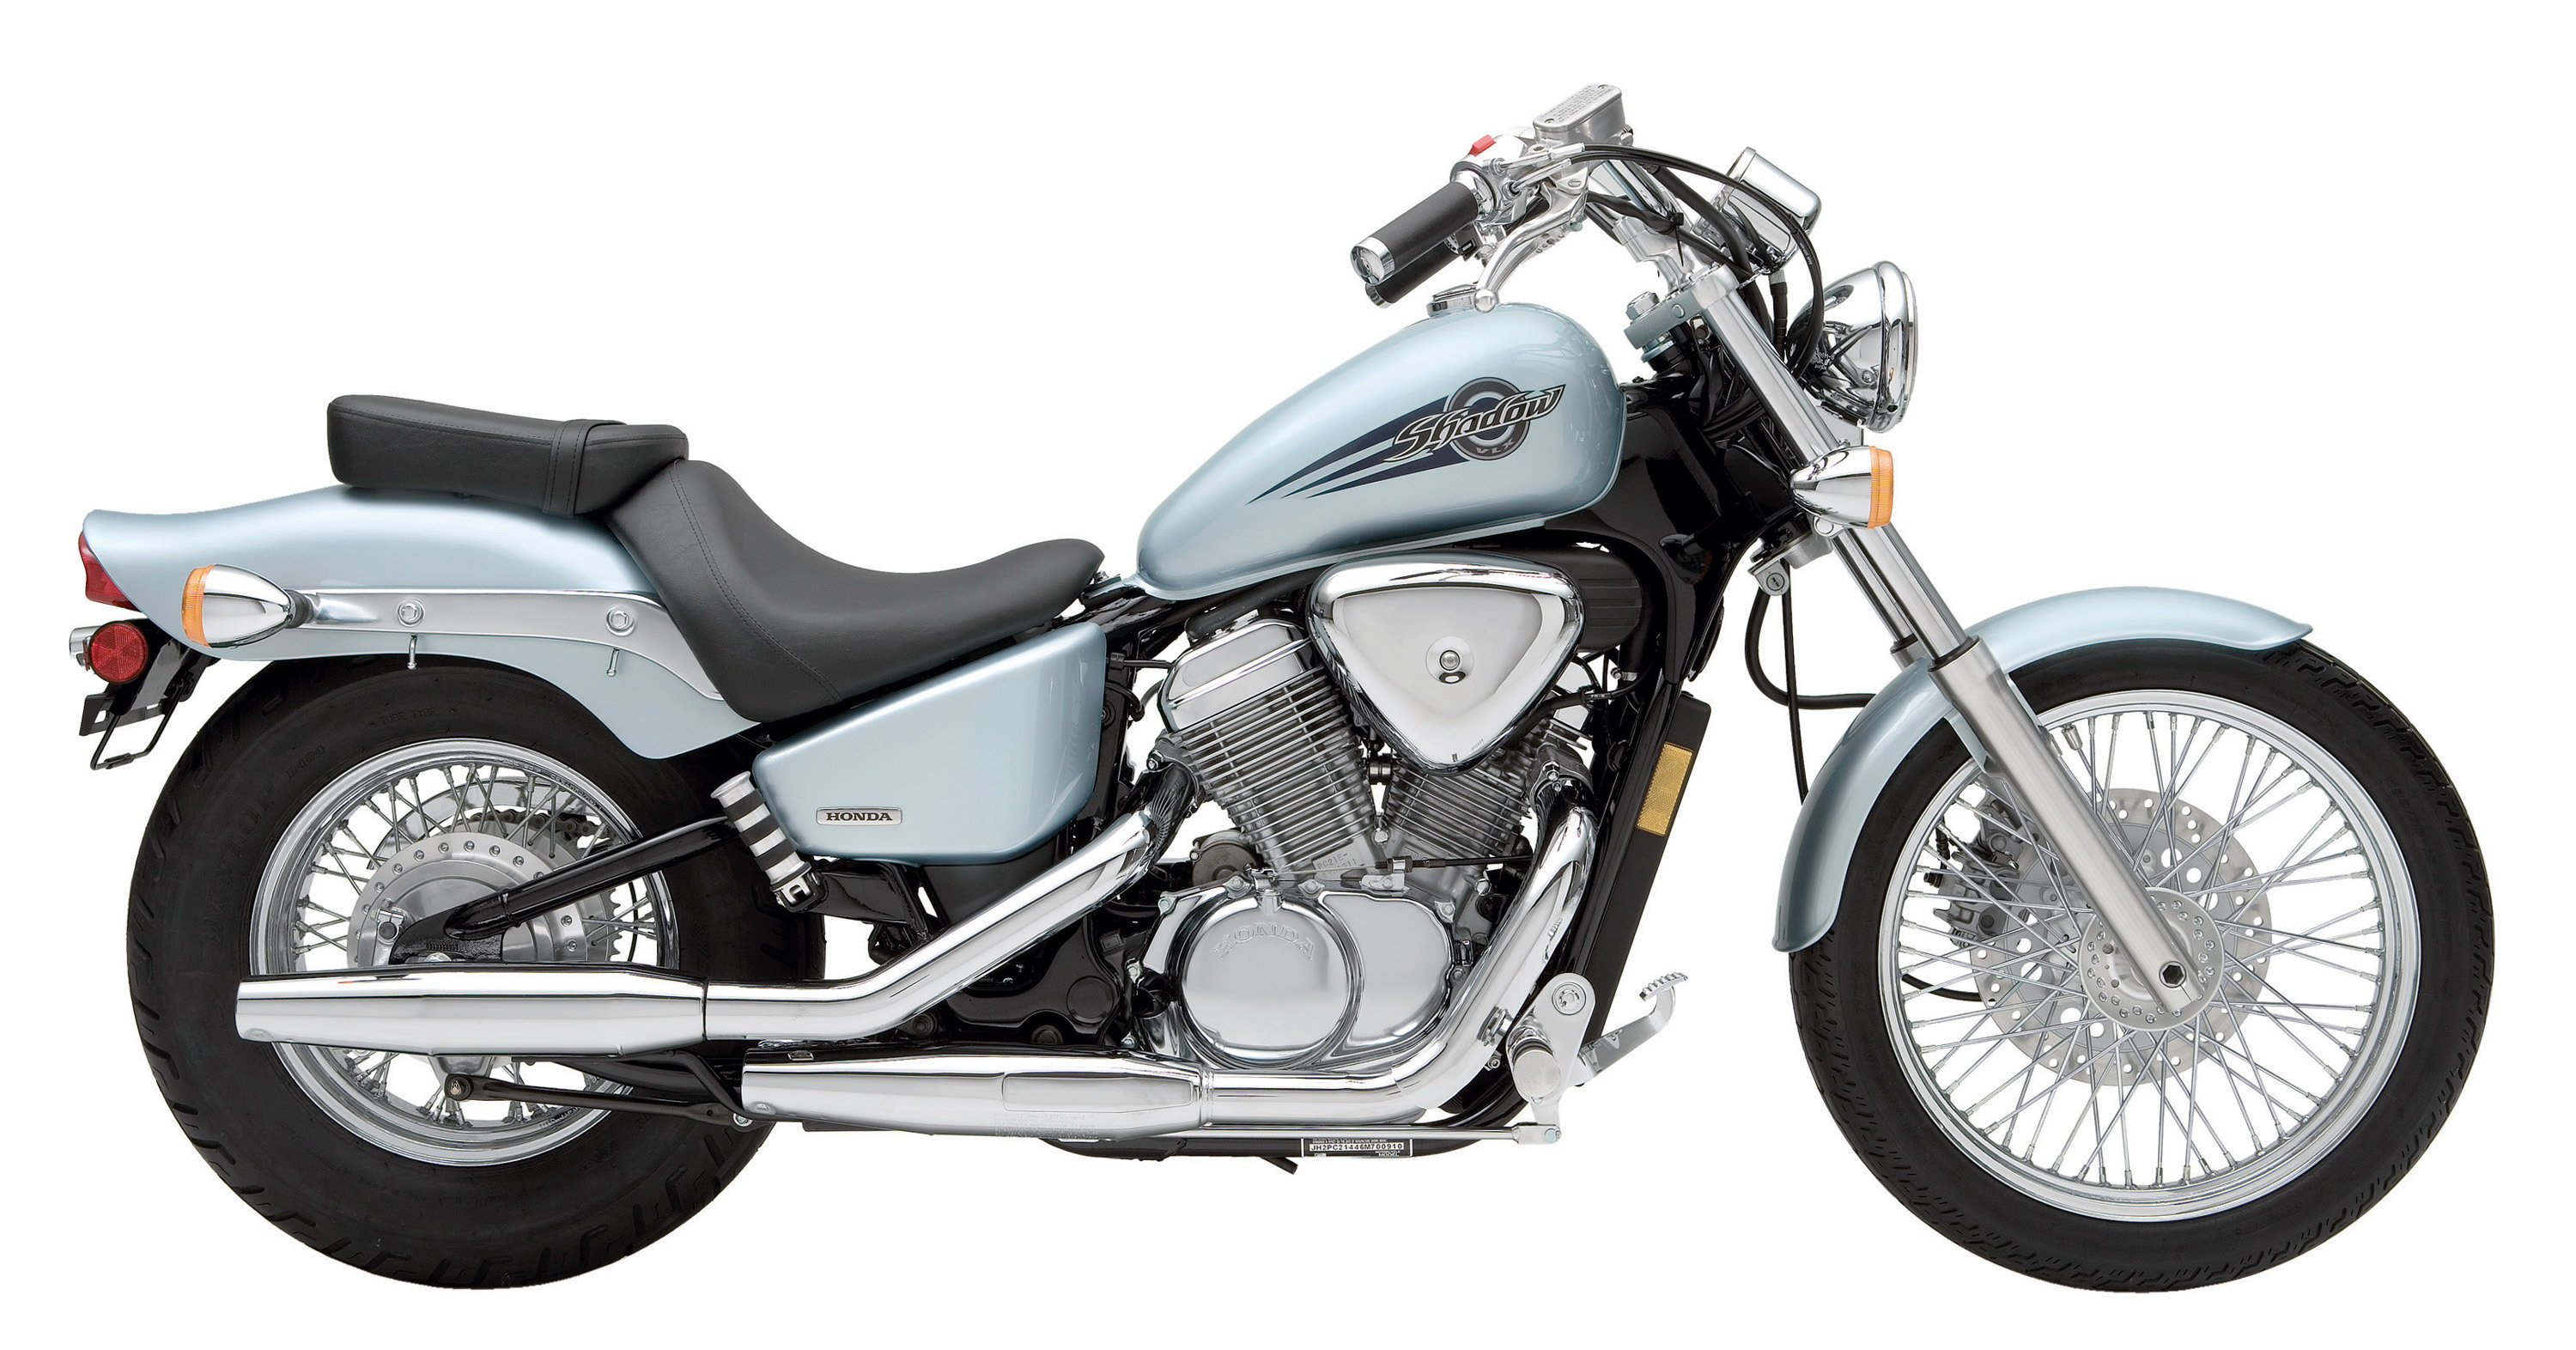 2007 Honda Shadow VLX/VLX Deluxe | Top Speed. »